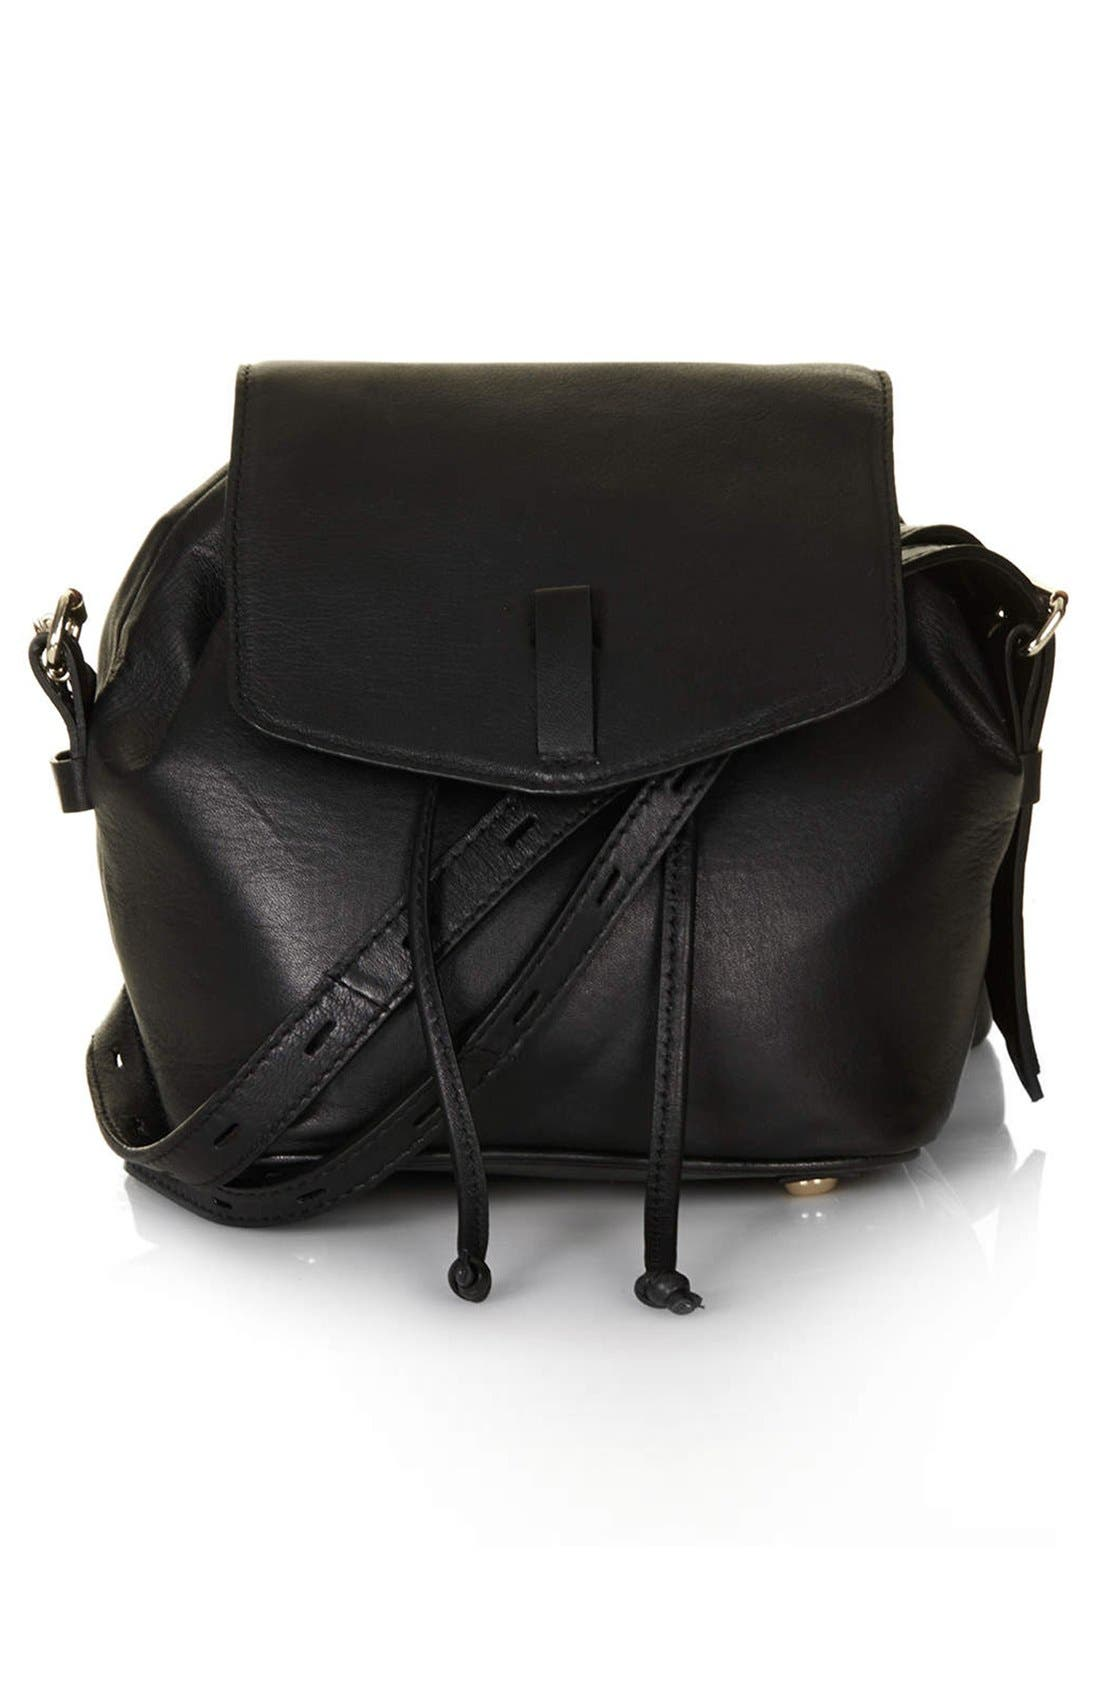 Alternate Image 1 Selected - Topshop Leather Convertible Crossbody Bag